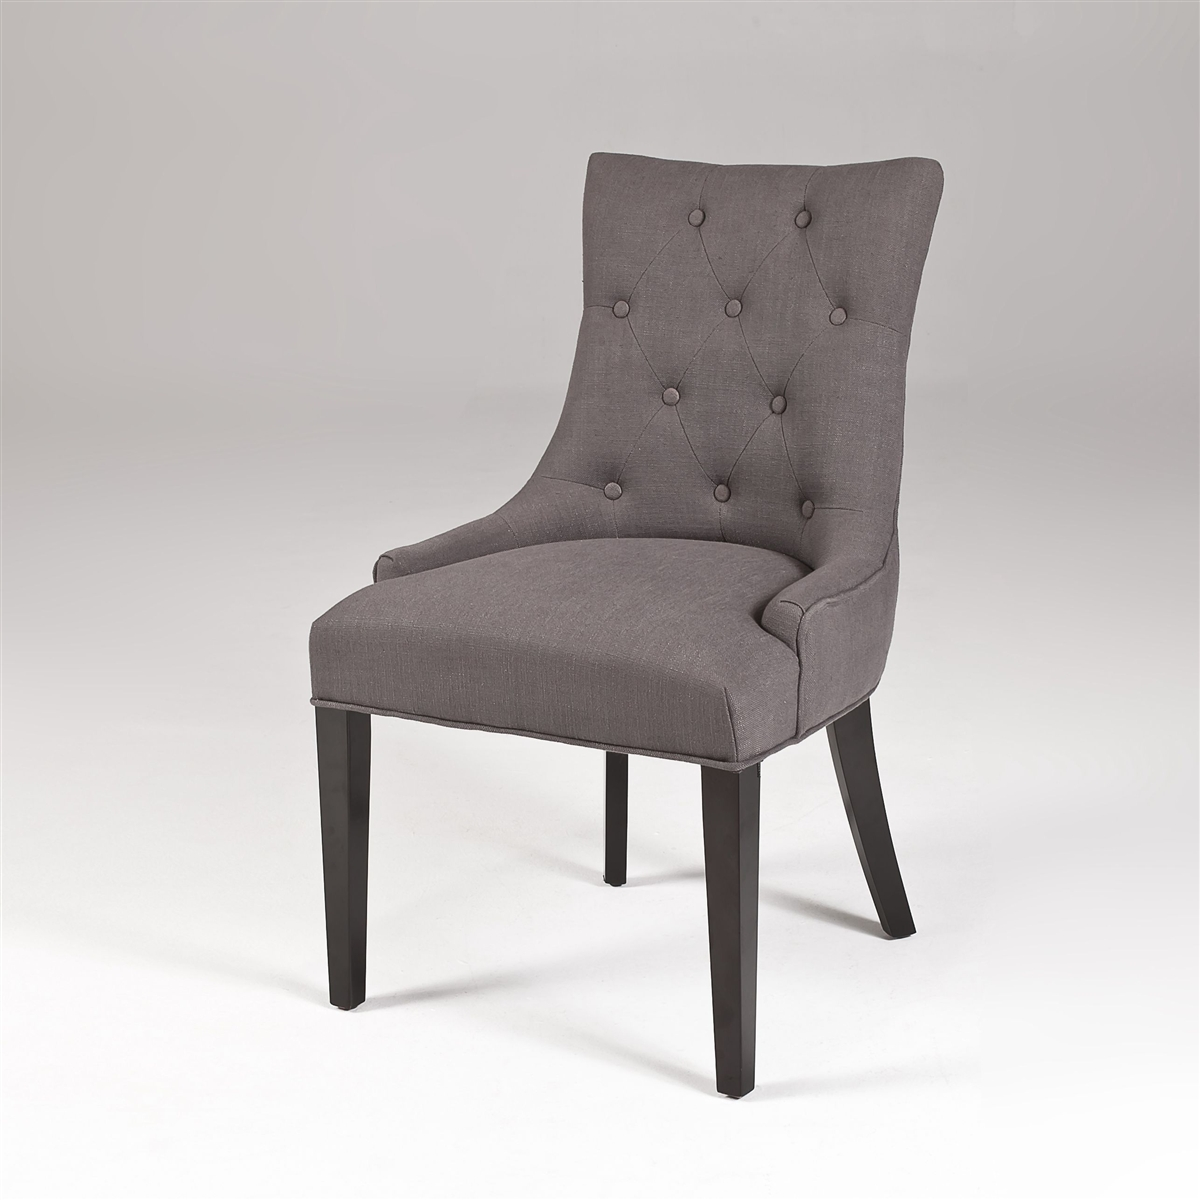 Gray Linen Dining Chairs | Modern Dining Chairs | Gray Linen Dining ...